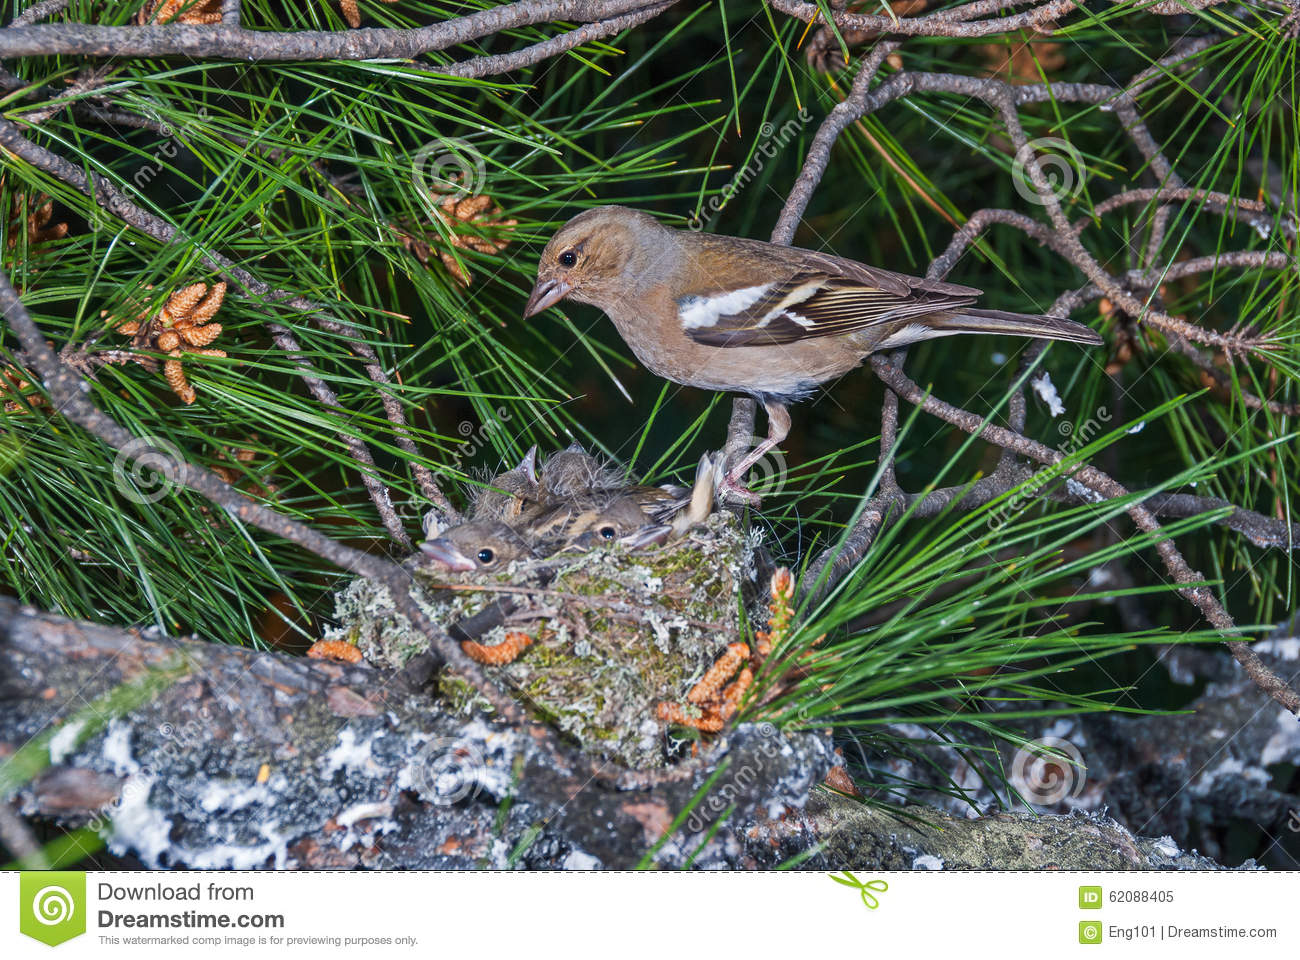 Chaffinch at nest with chicks